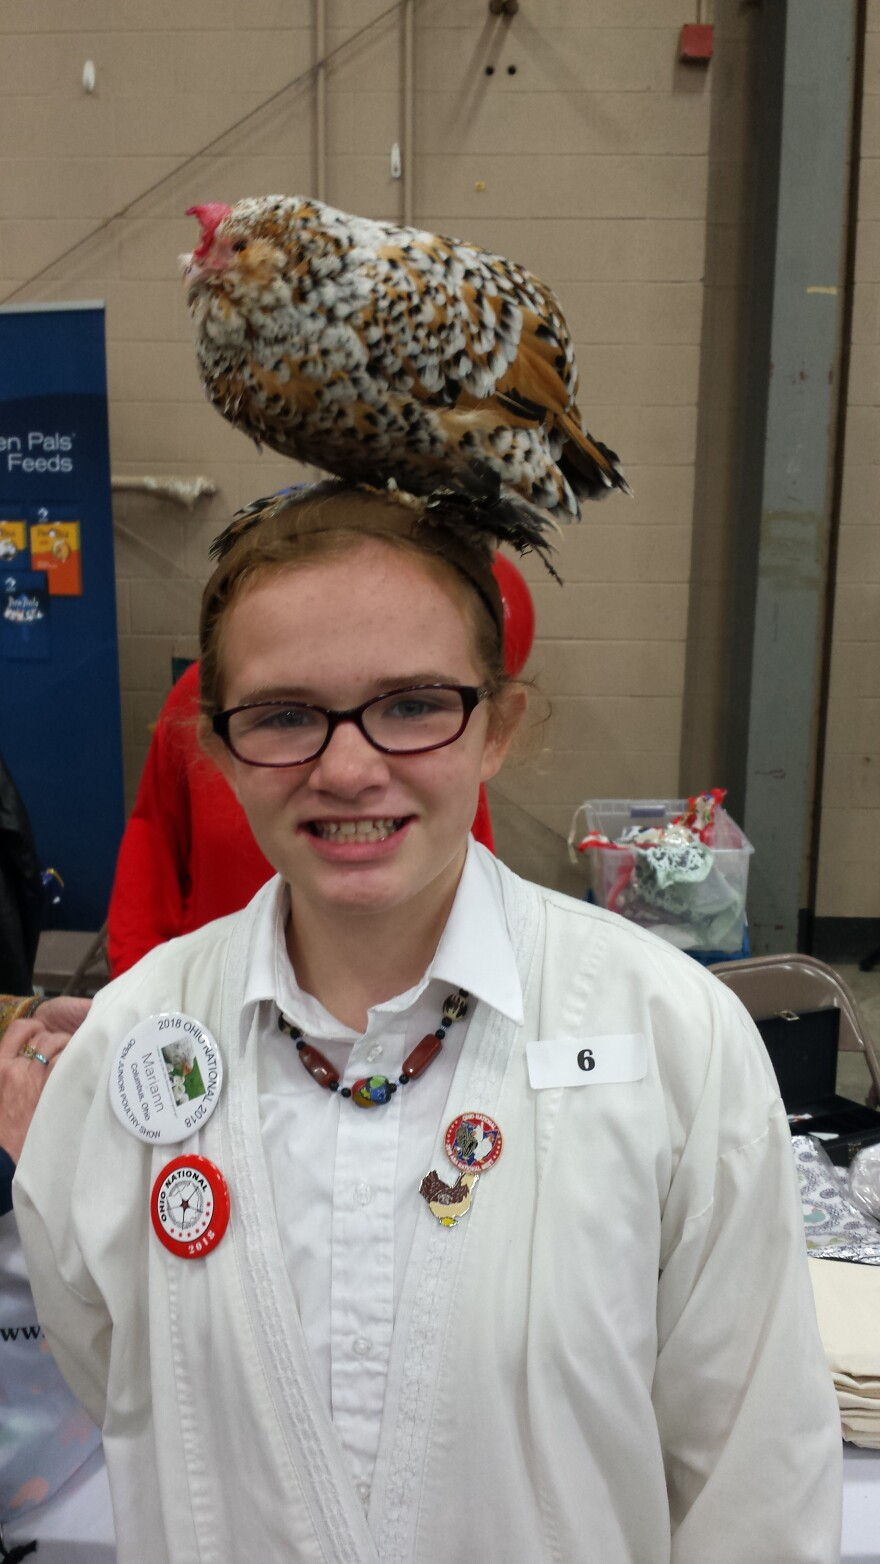 Mary Ann, 11 year old from Kenton with her chicken Queenie, a Mille Fleur Belgian Bearded D'Uccle, on her head.